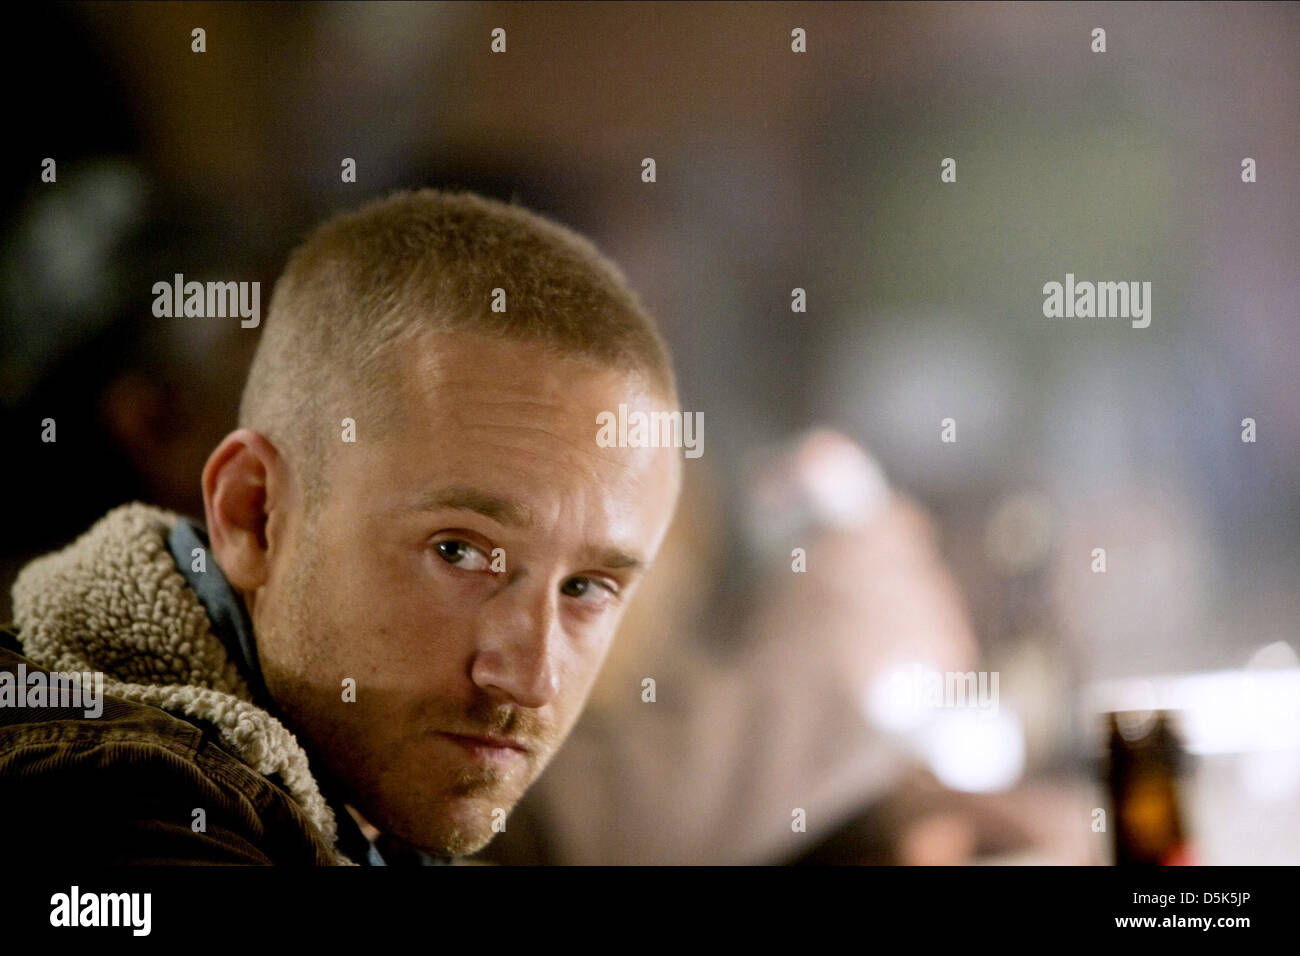 BEN FOSTER CONTRABAND (2012) - Stock Image